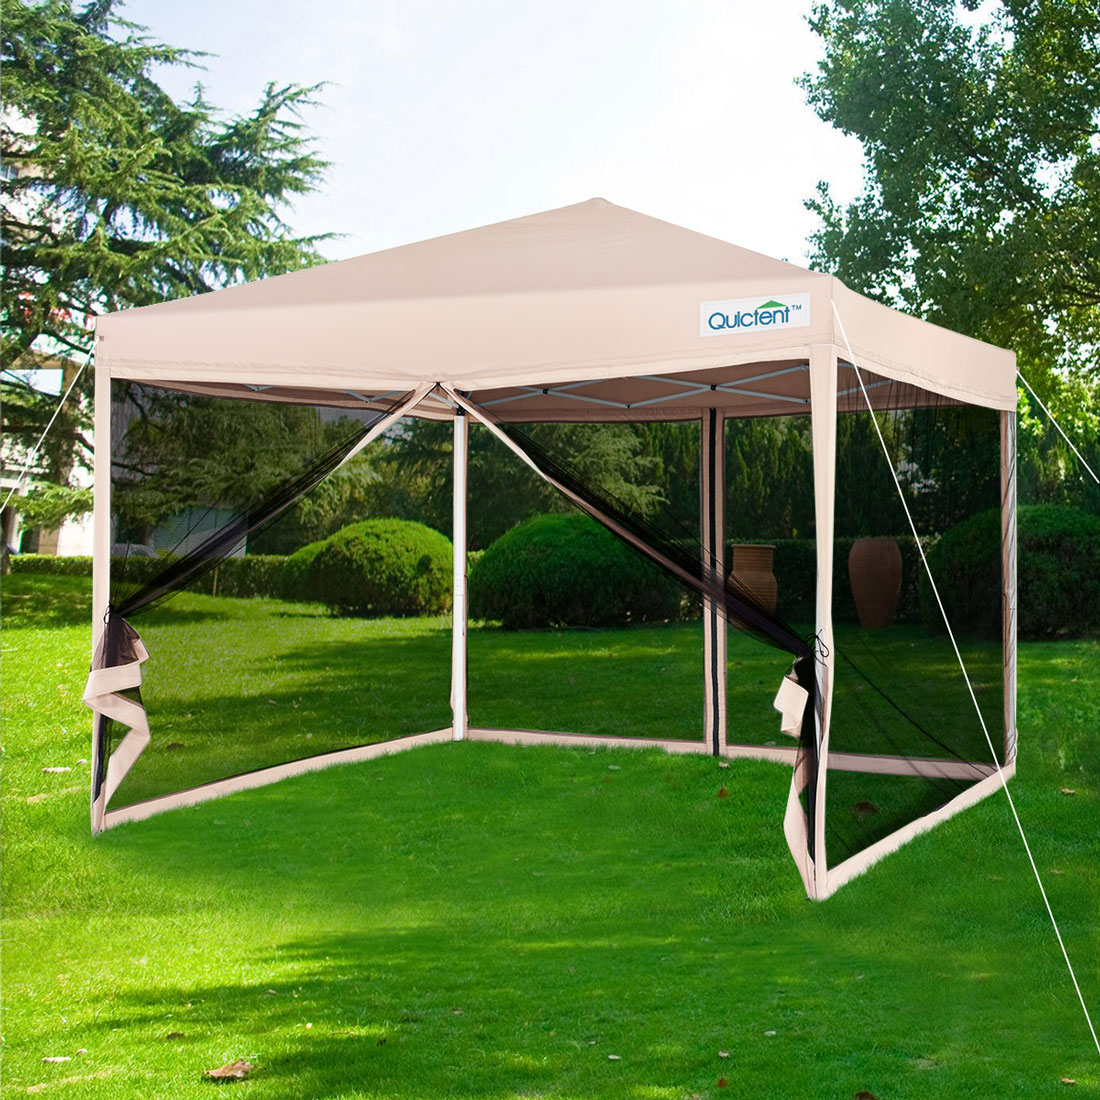 Pop Up Canopy Quictent 8x8 Ez Pop Up Canopy Screen House With Netting Instant Outdoor Canopy Tent Mesh Sideswalls 3 Colors Tan